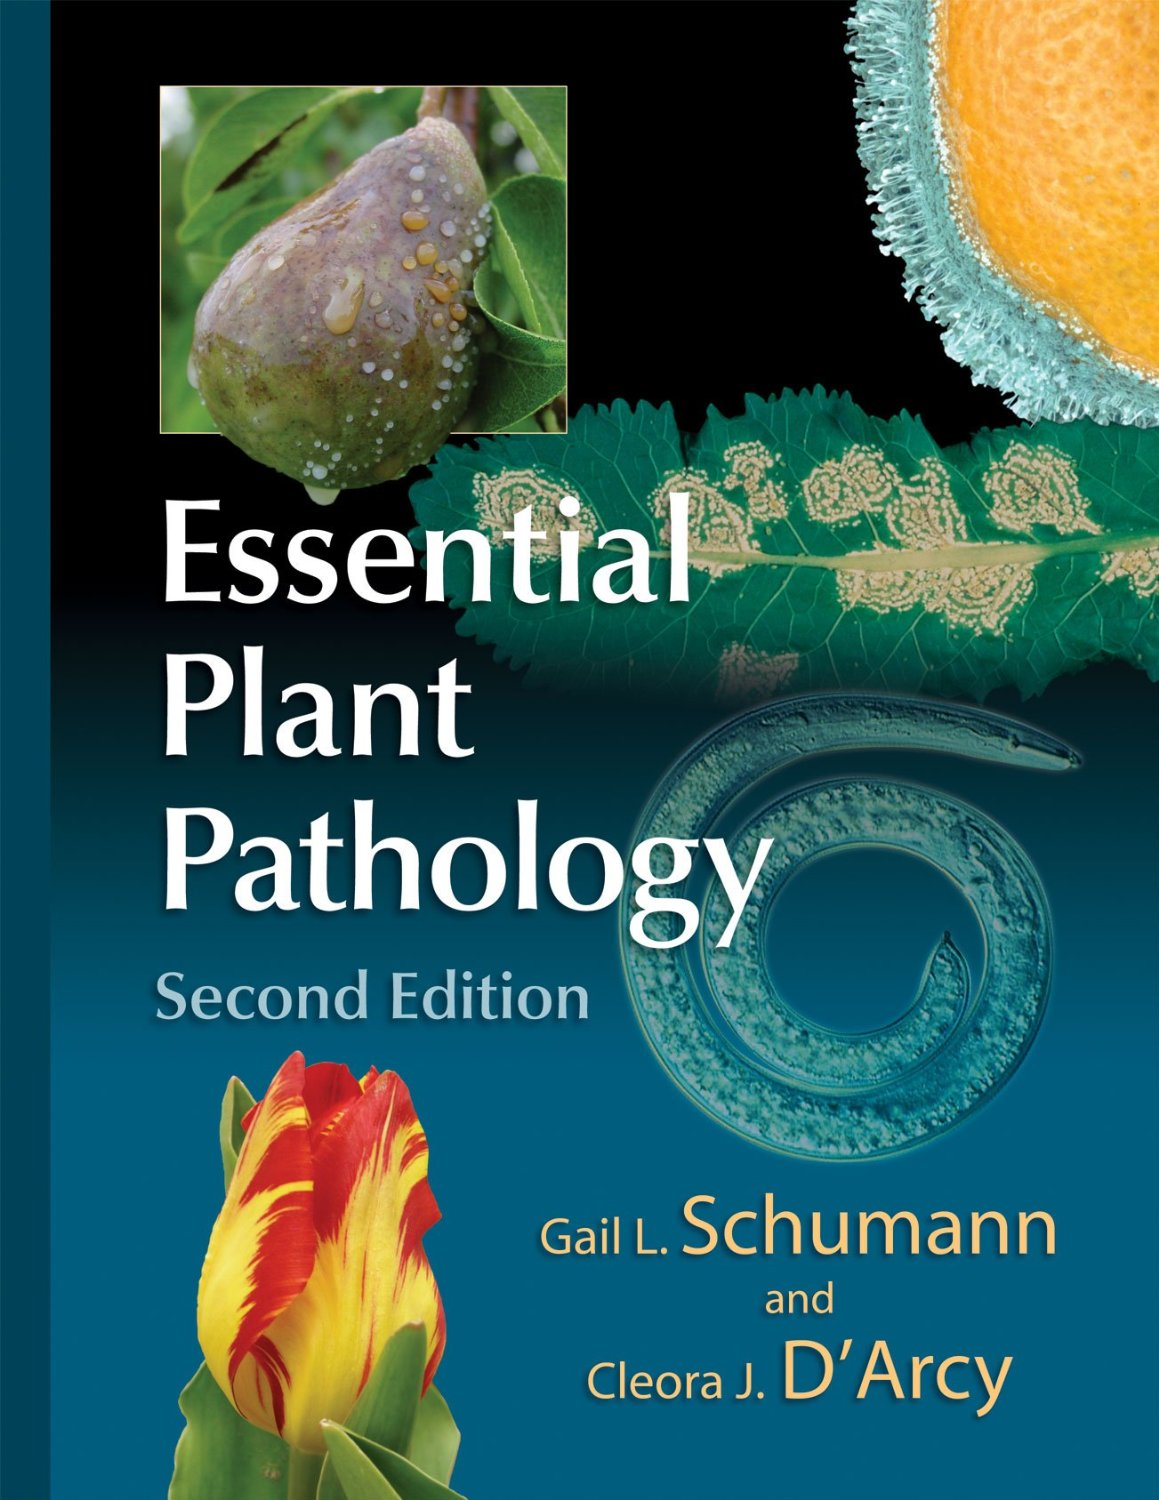 Essential Plant Pathology